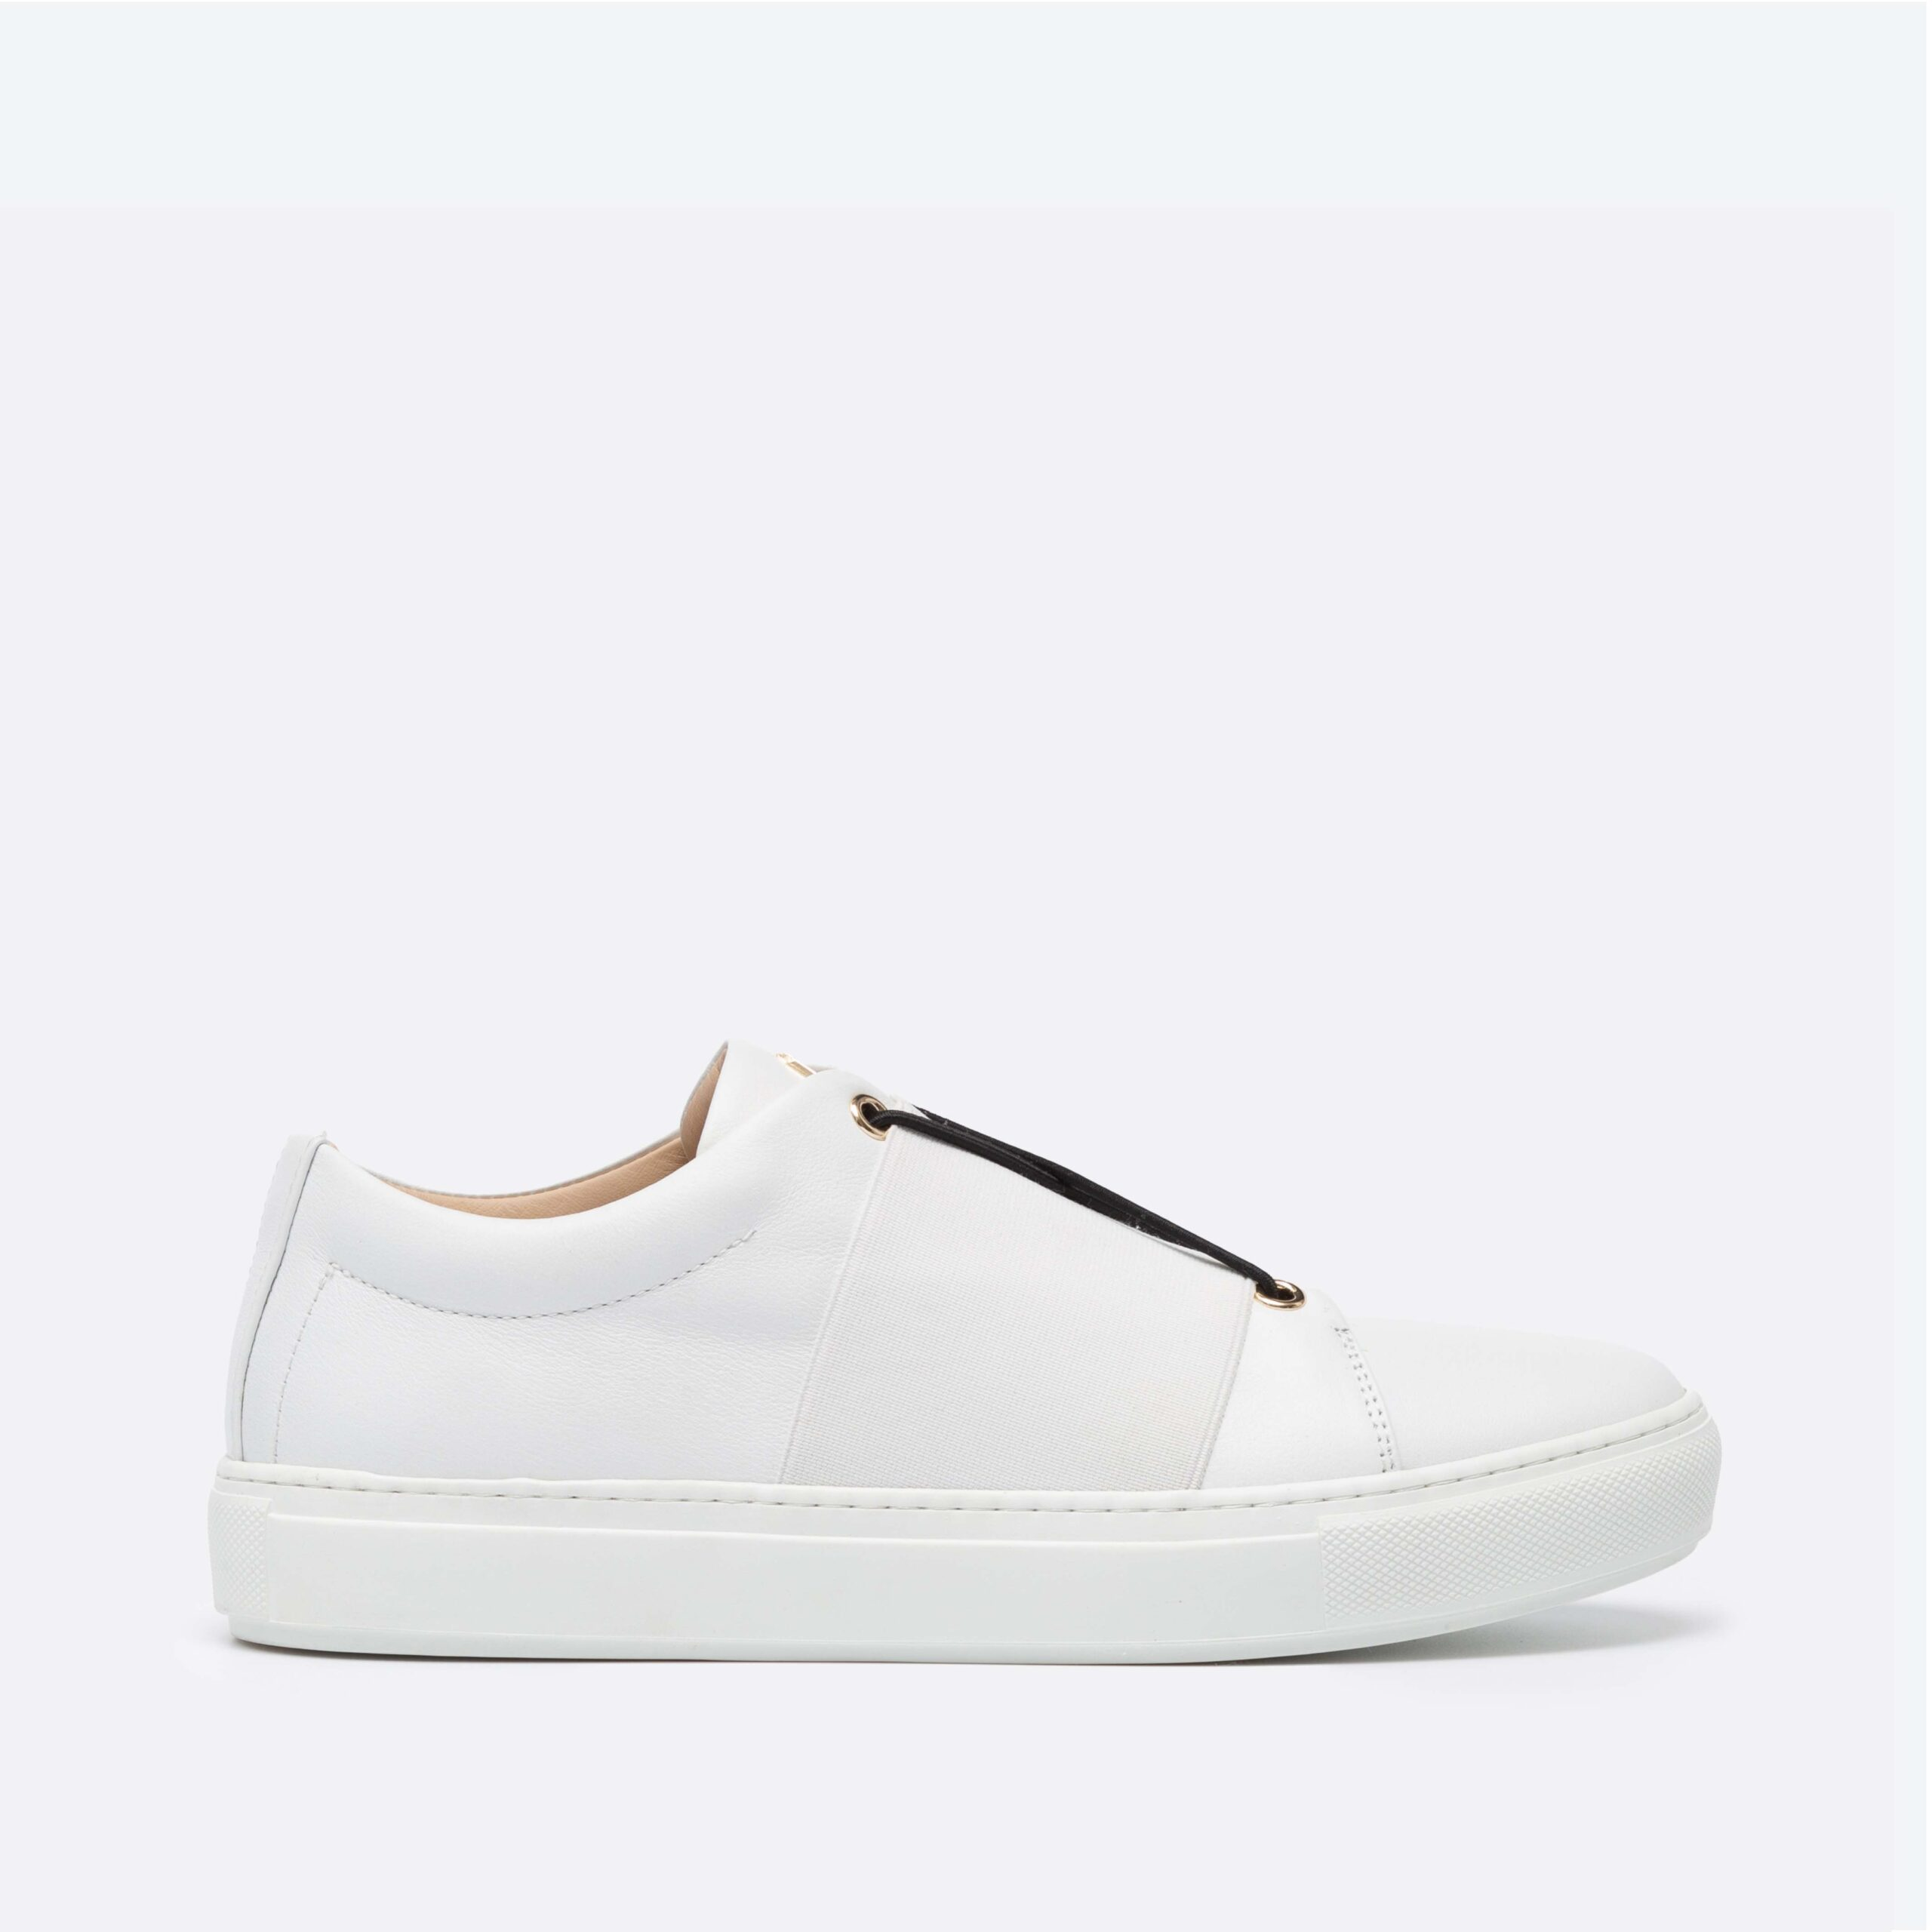 XOXO B.B Sneaker Low-Top Blanche